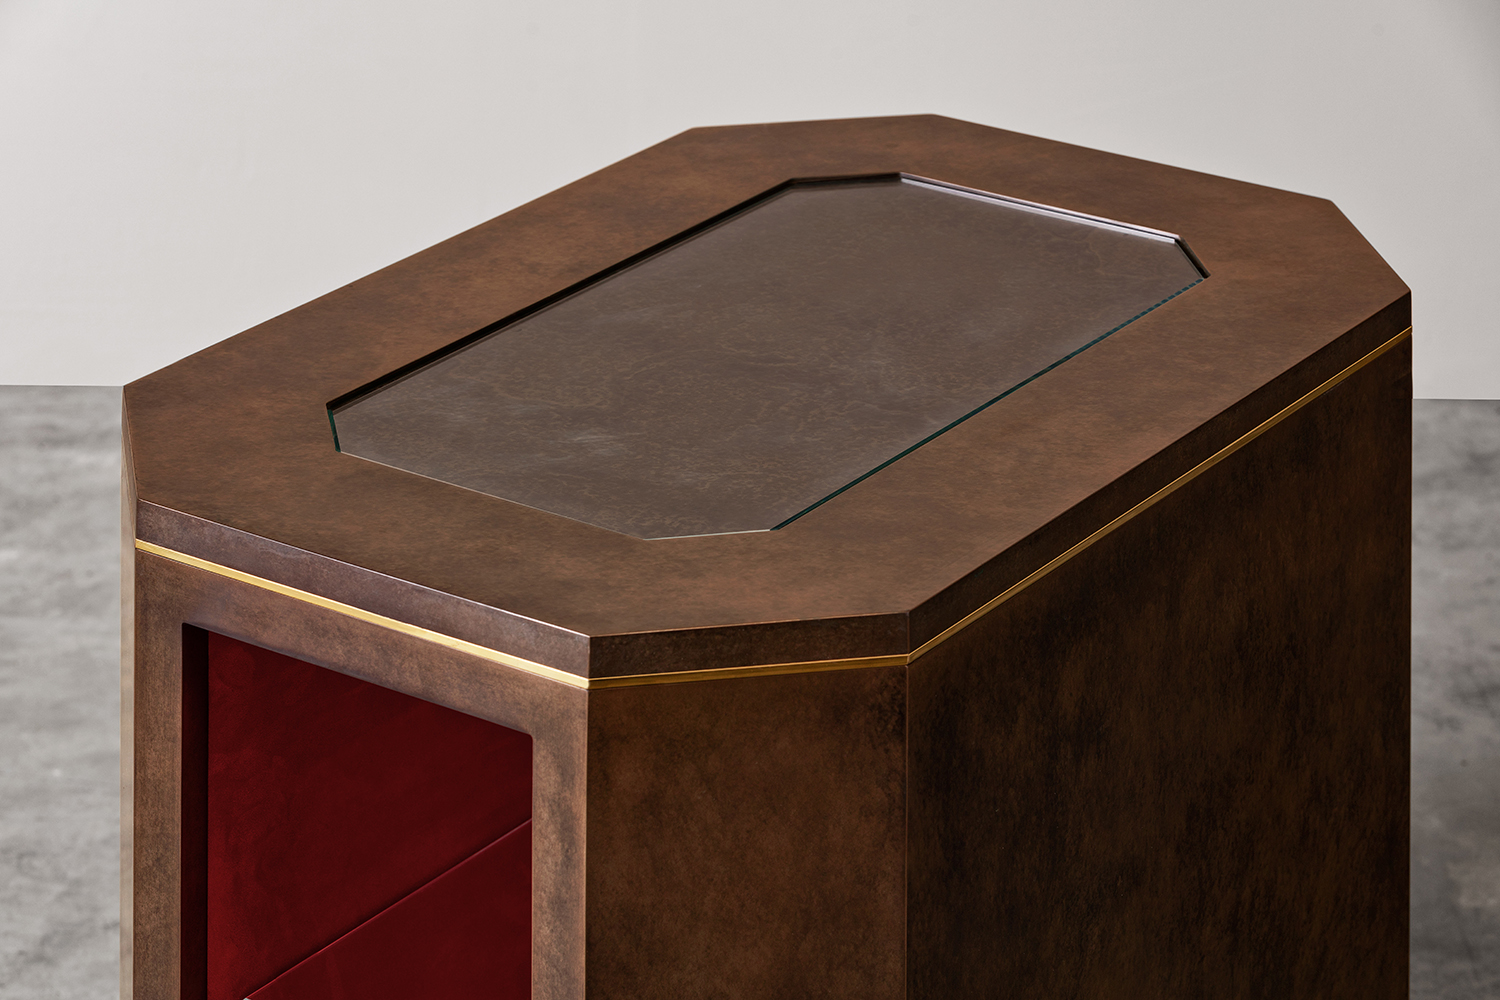 Luxury Patinated Bronze Side Table - Bespoke Furniture Hampshire, UK